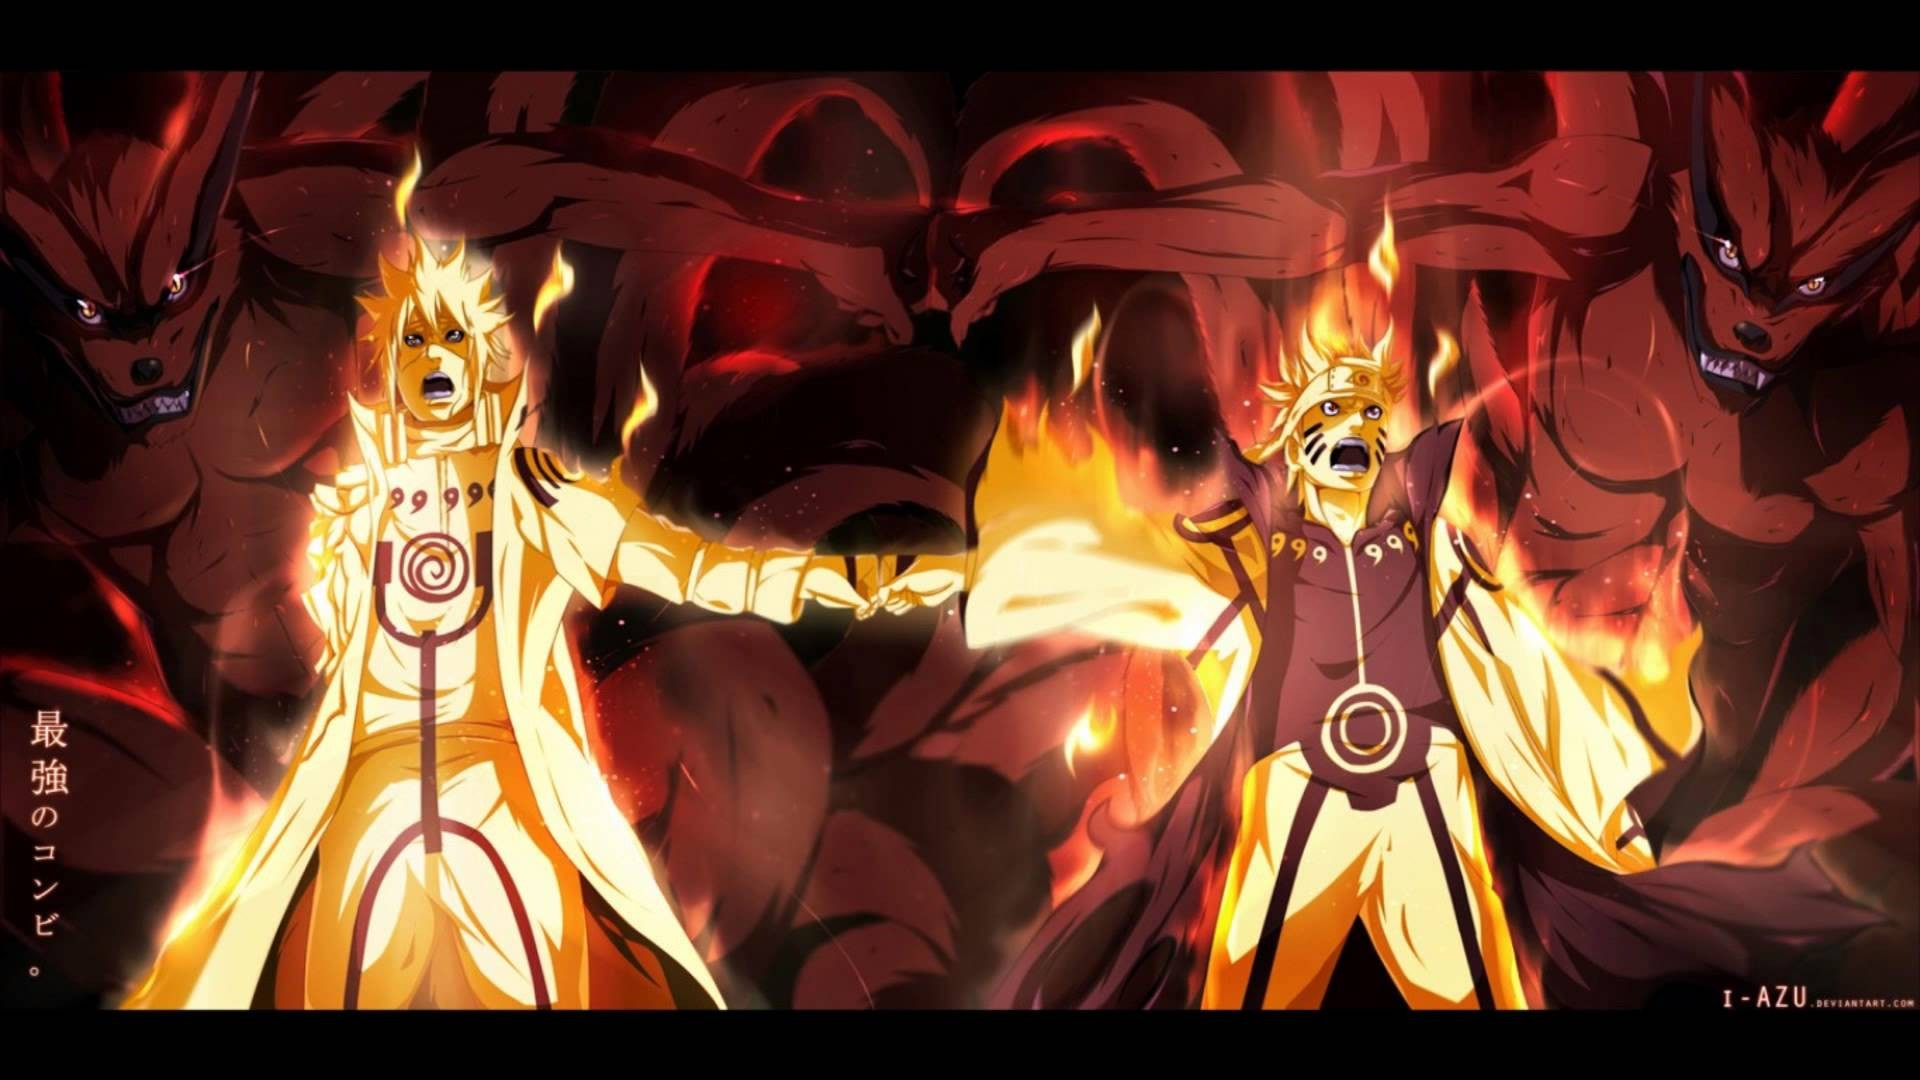 Naruto wallpaper download free awesome backgrounds for desktop 1920x1080 full size naruto wallpaper 1920x1080 for tablet voltagebd Gallery